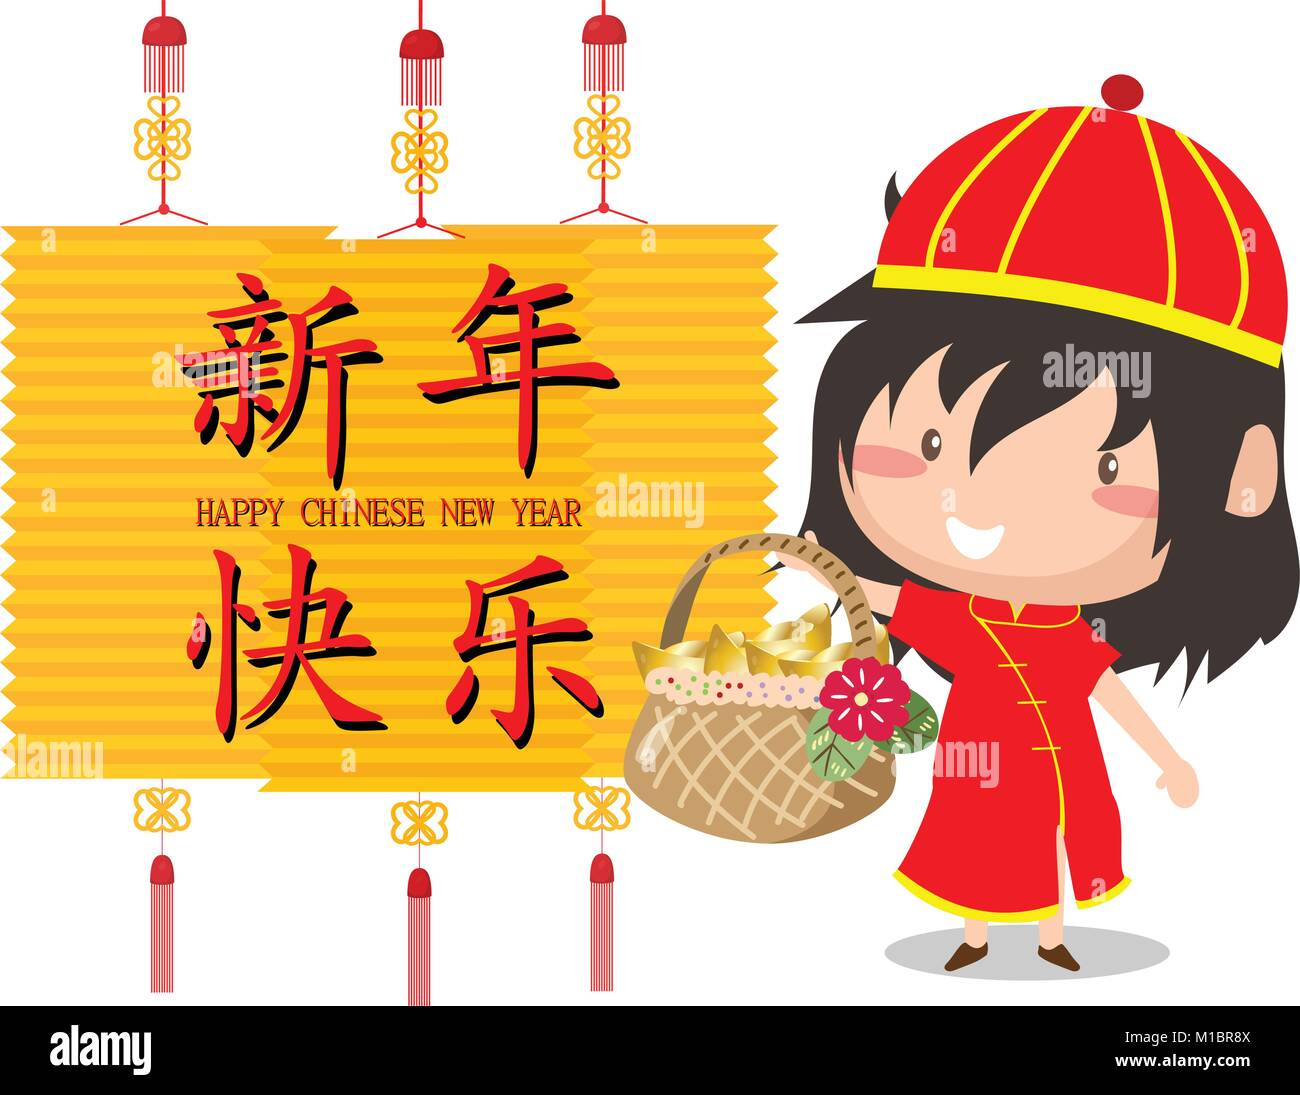 2018 happy chinese new year design cute girl happy smile in chinese words on isolate background